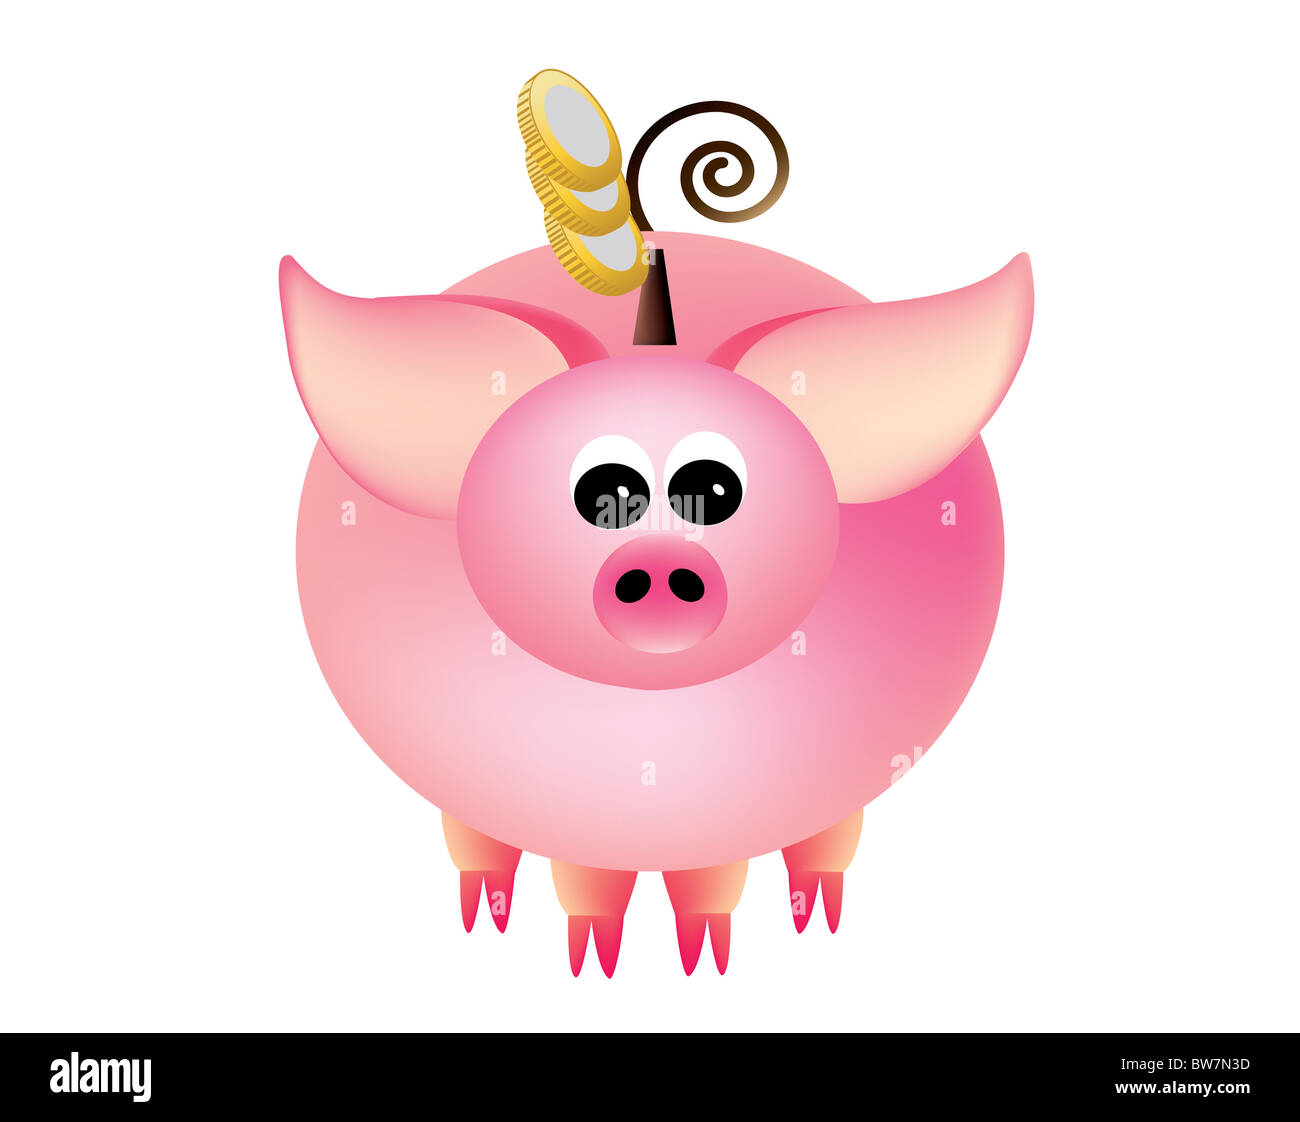 Piggy bank with coins on a white background. - Stock Image